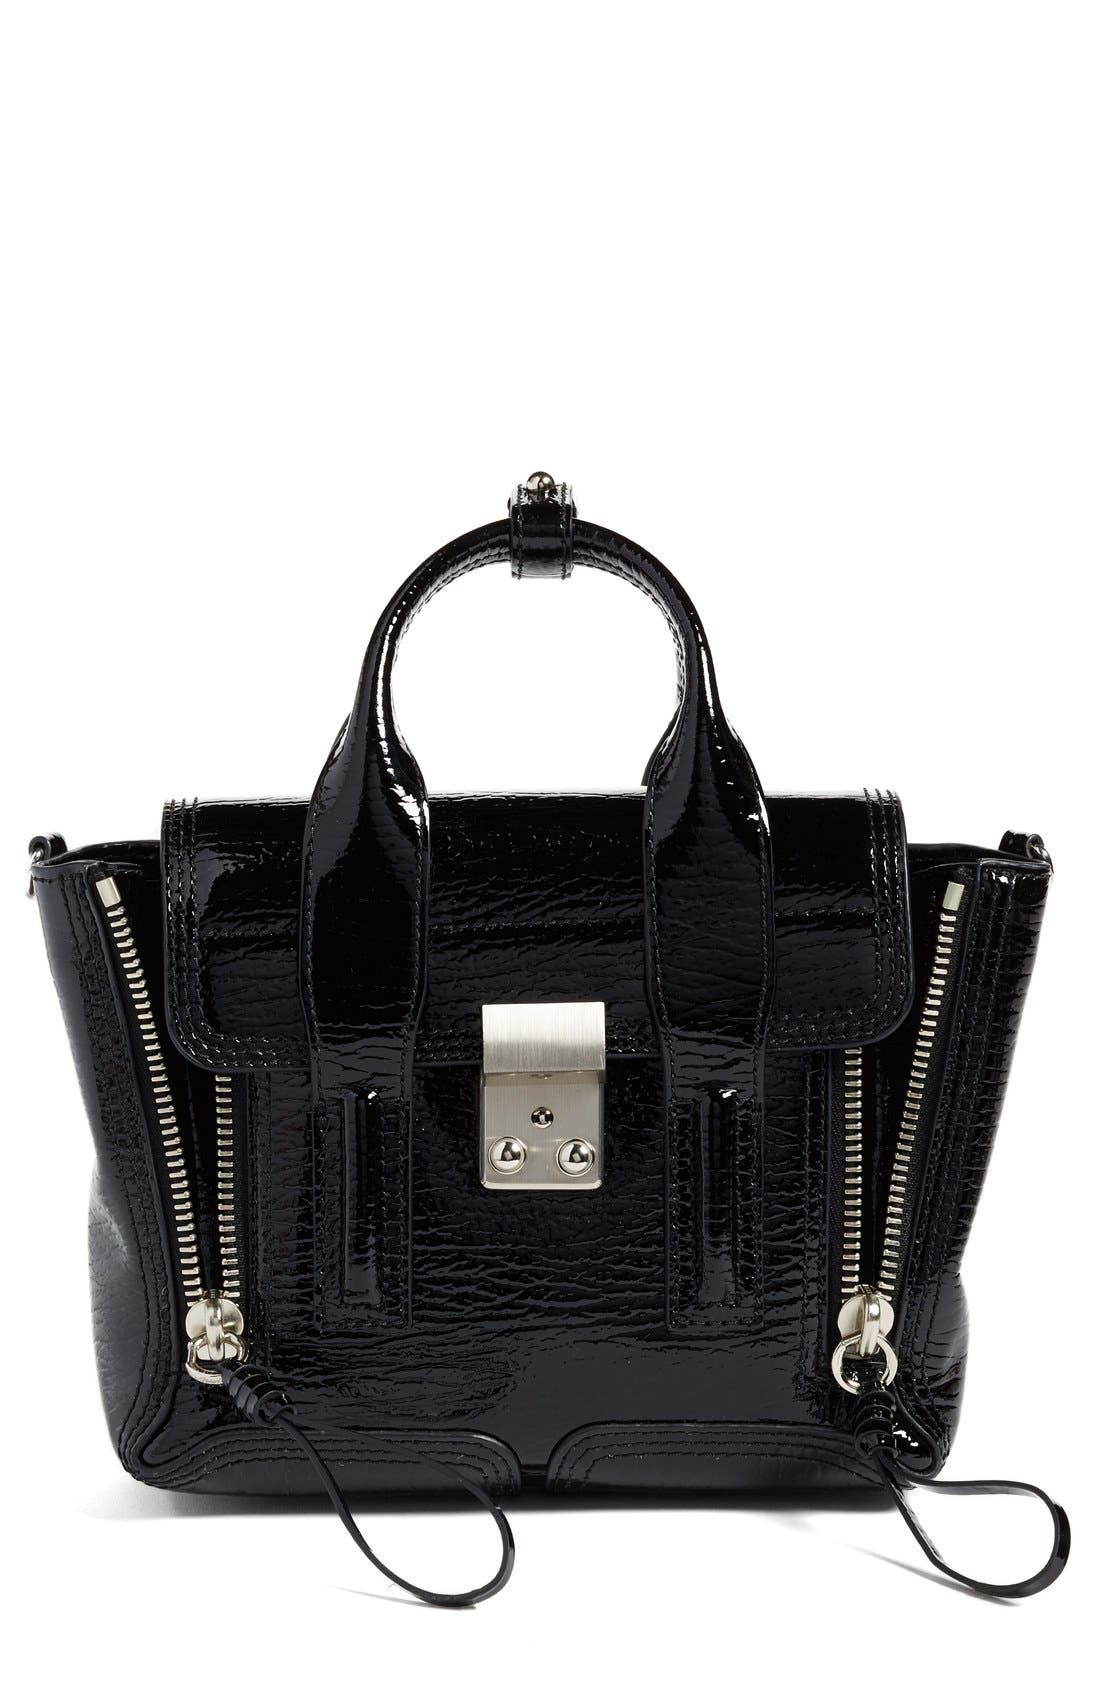 3.1 Phillip Lim 'Mini Pashli' Shark Embossed Leather Satchel